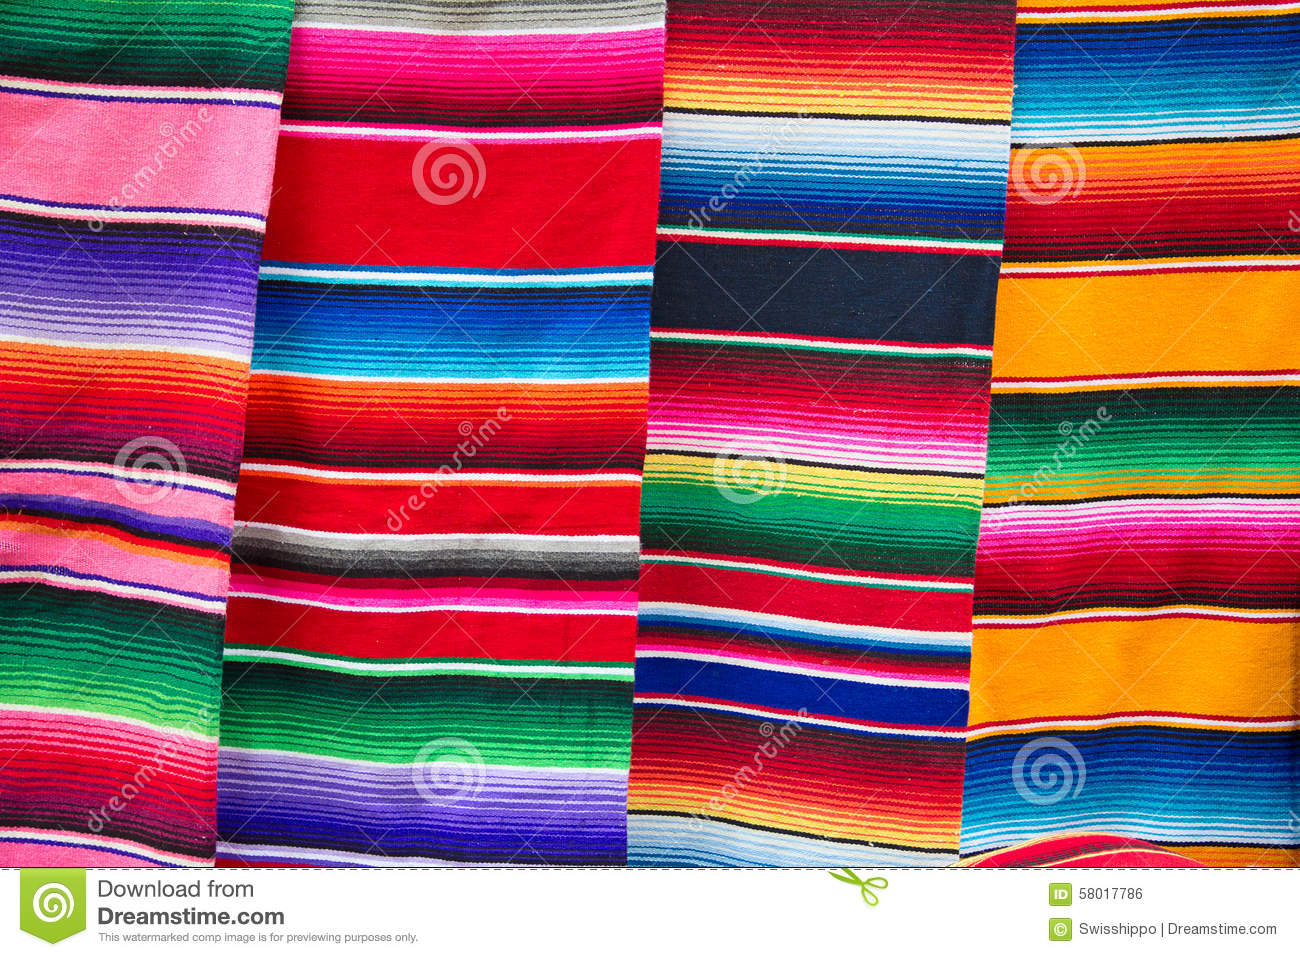 Mexican ponchos stock photo  Image of fabric, america - 58017786